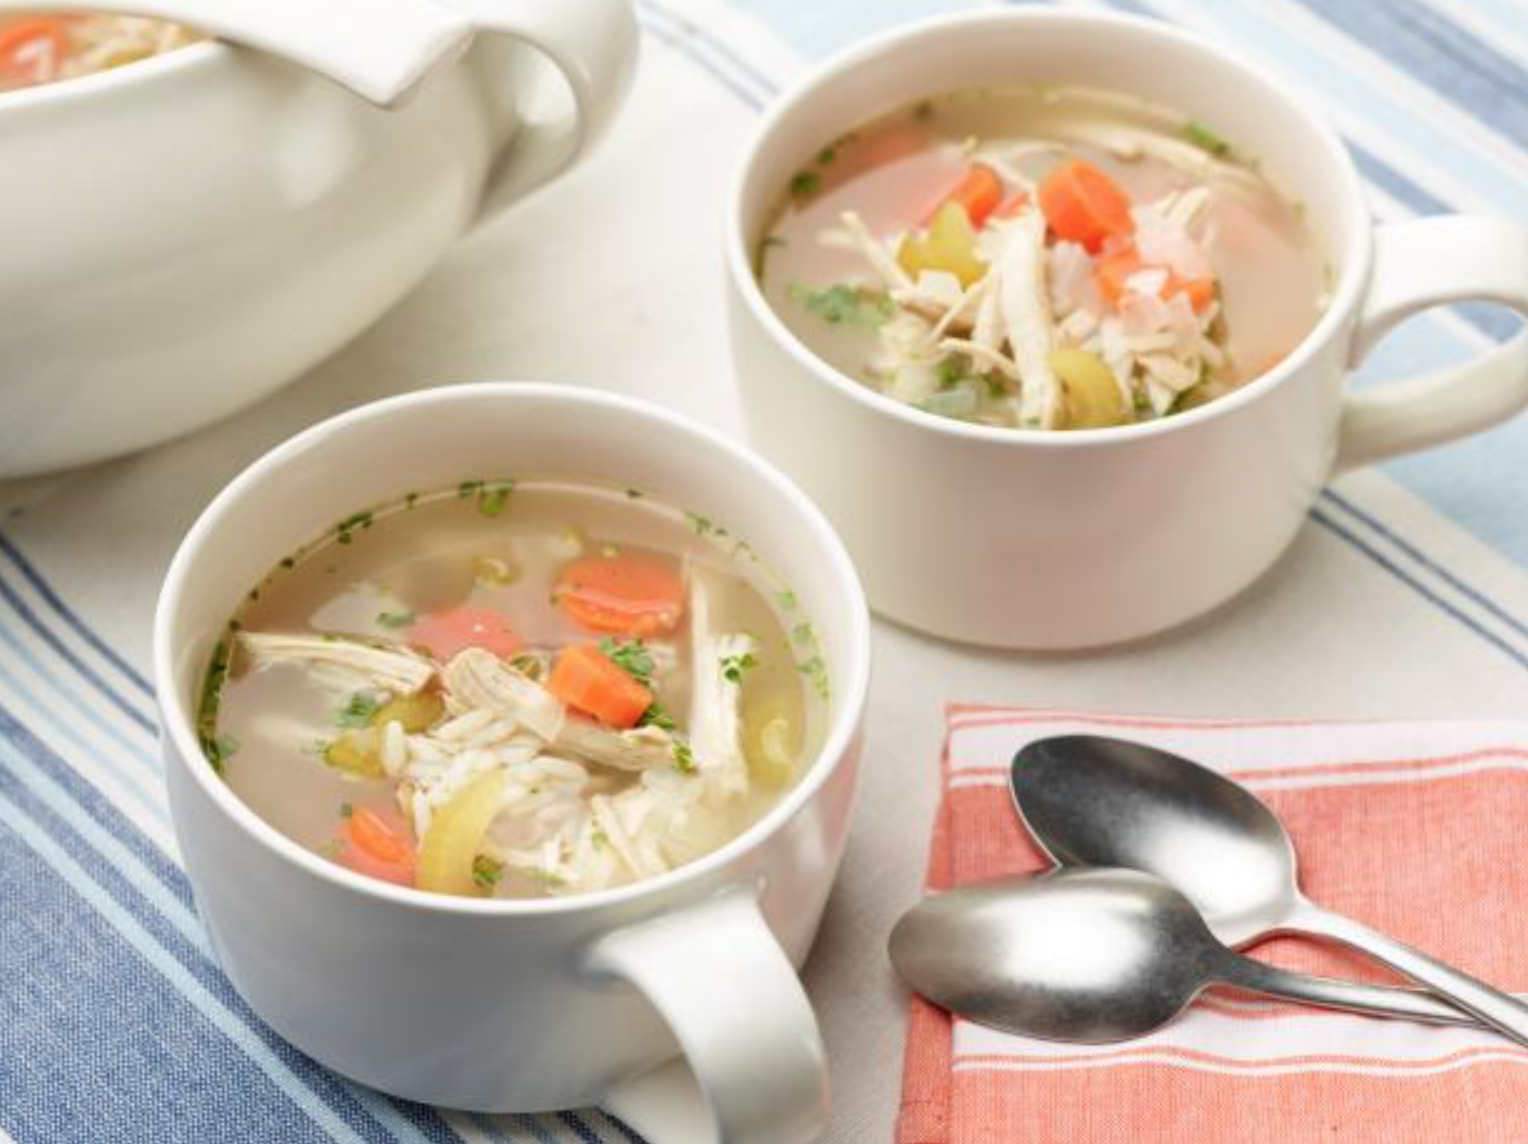 Assisted Living Retirement Home Ottawa Stroke Rehabilitation Centre Soup